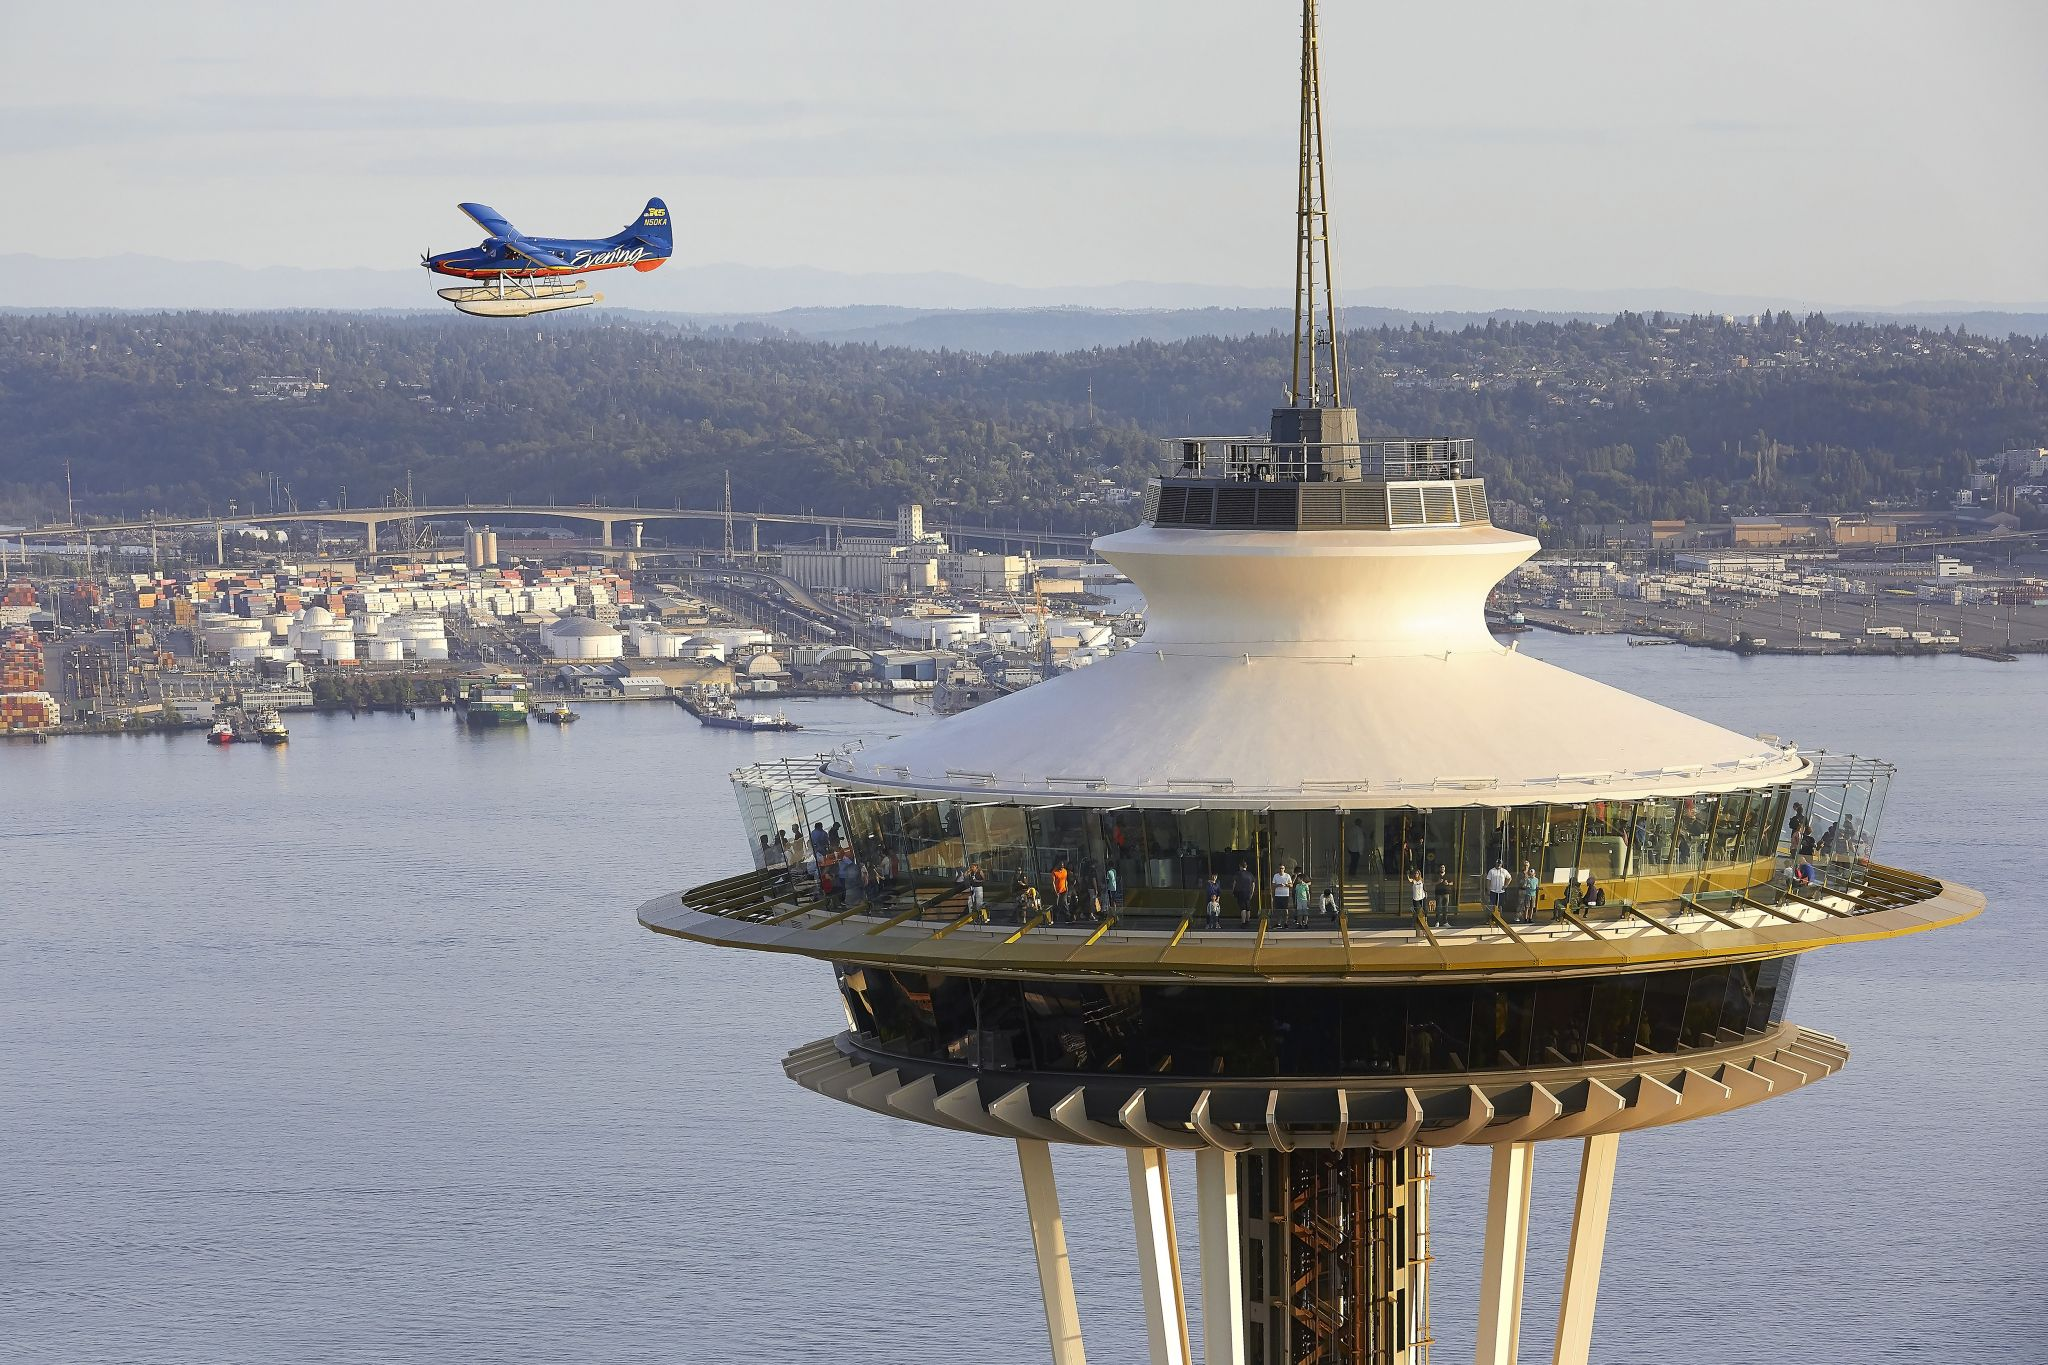 Seattle's cost of living is 56.8% higher than national average